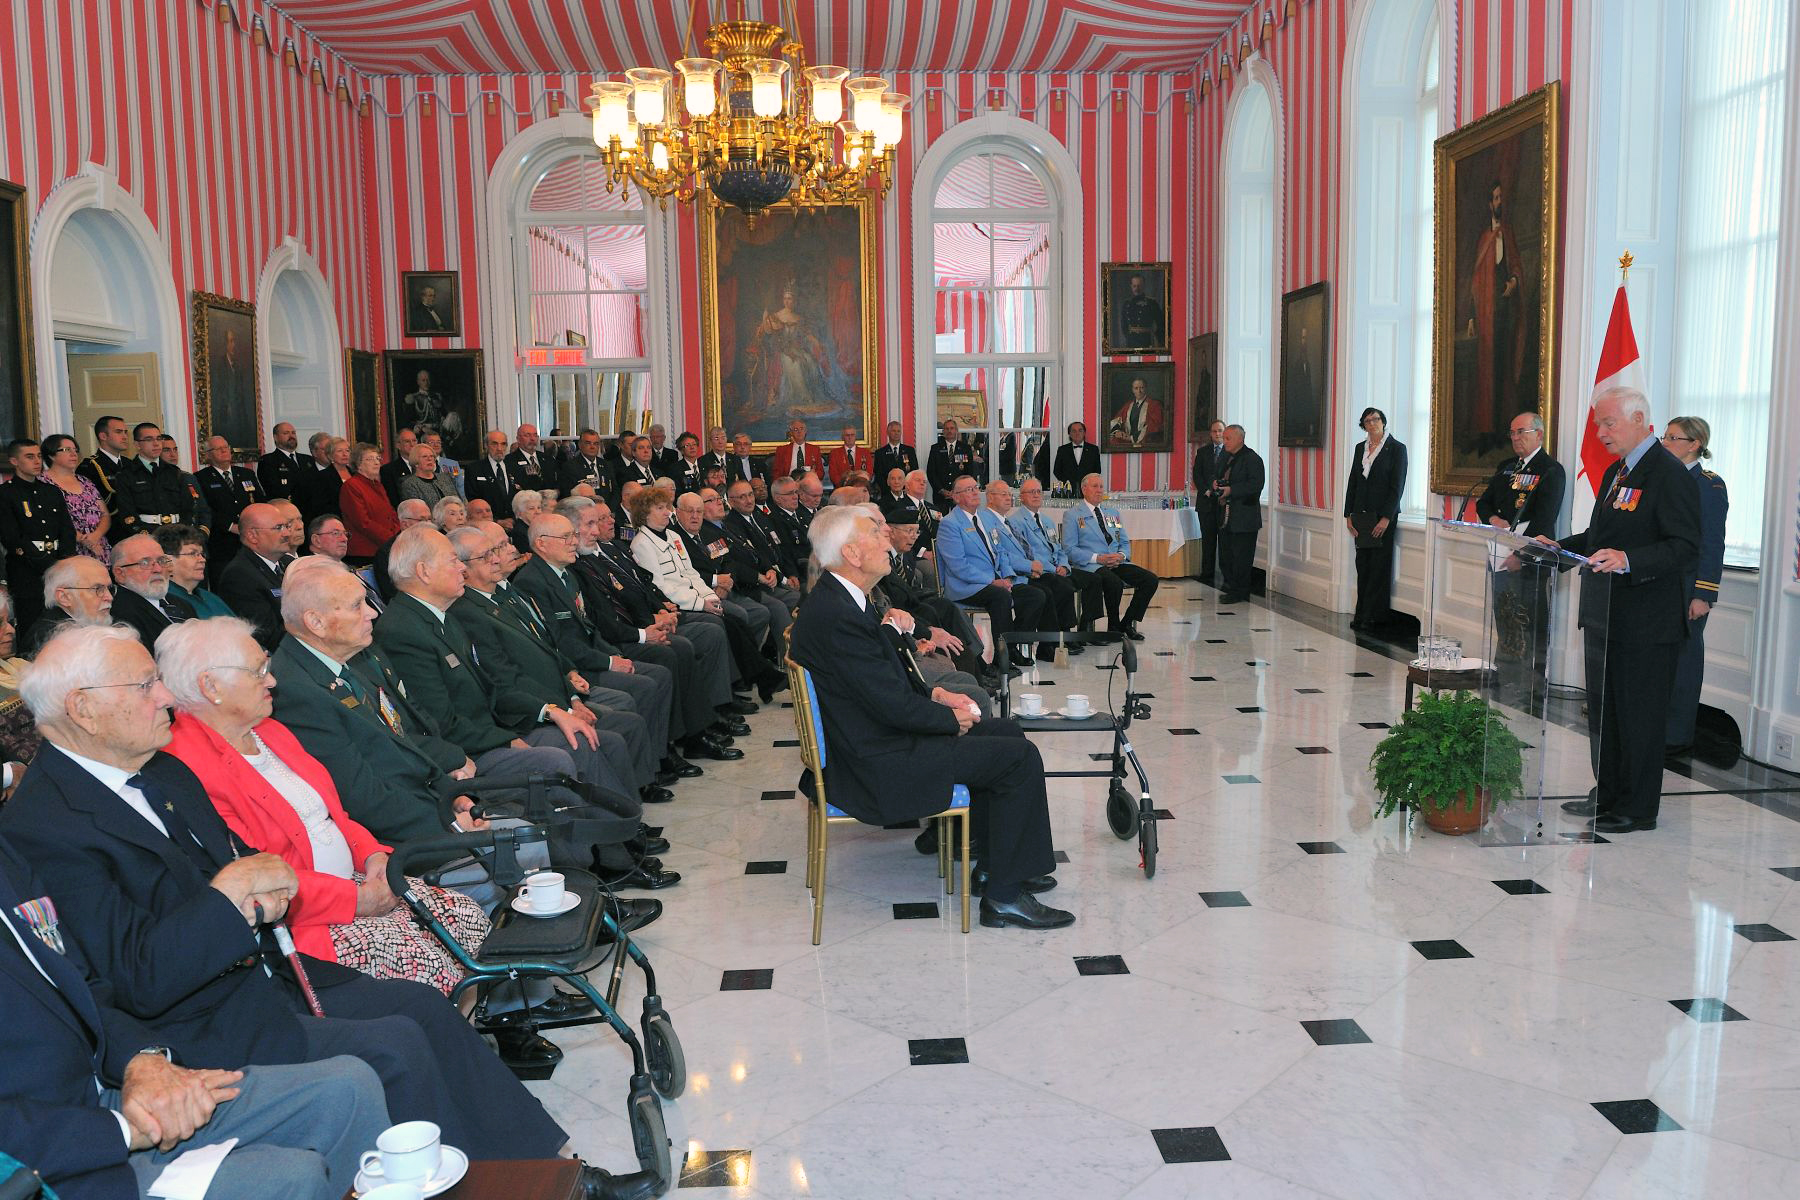 On October 26, 2011, the 2011 National Poppy Campaign was launched at Rideau Hall.